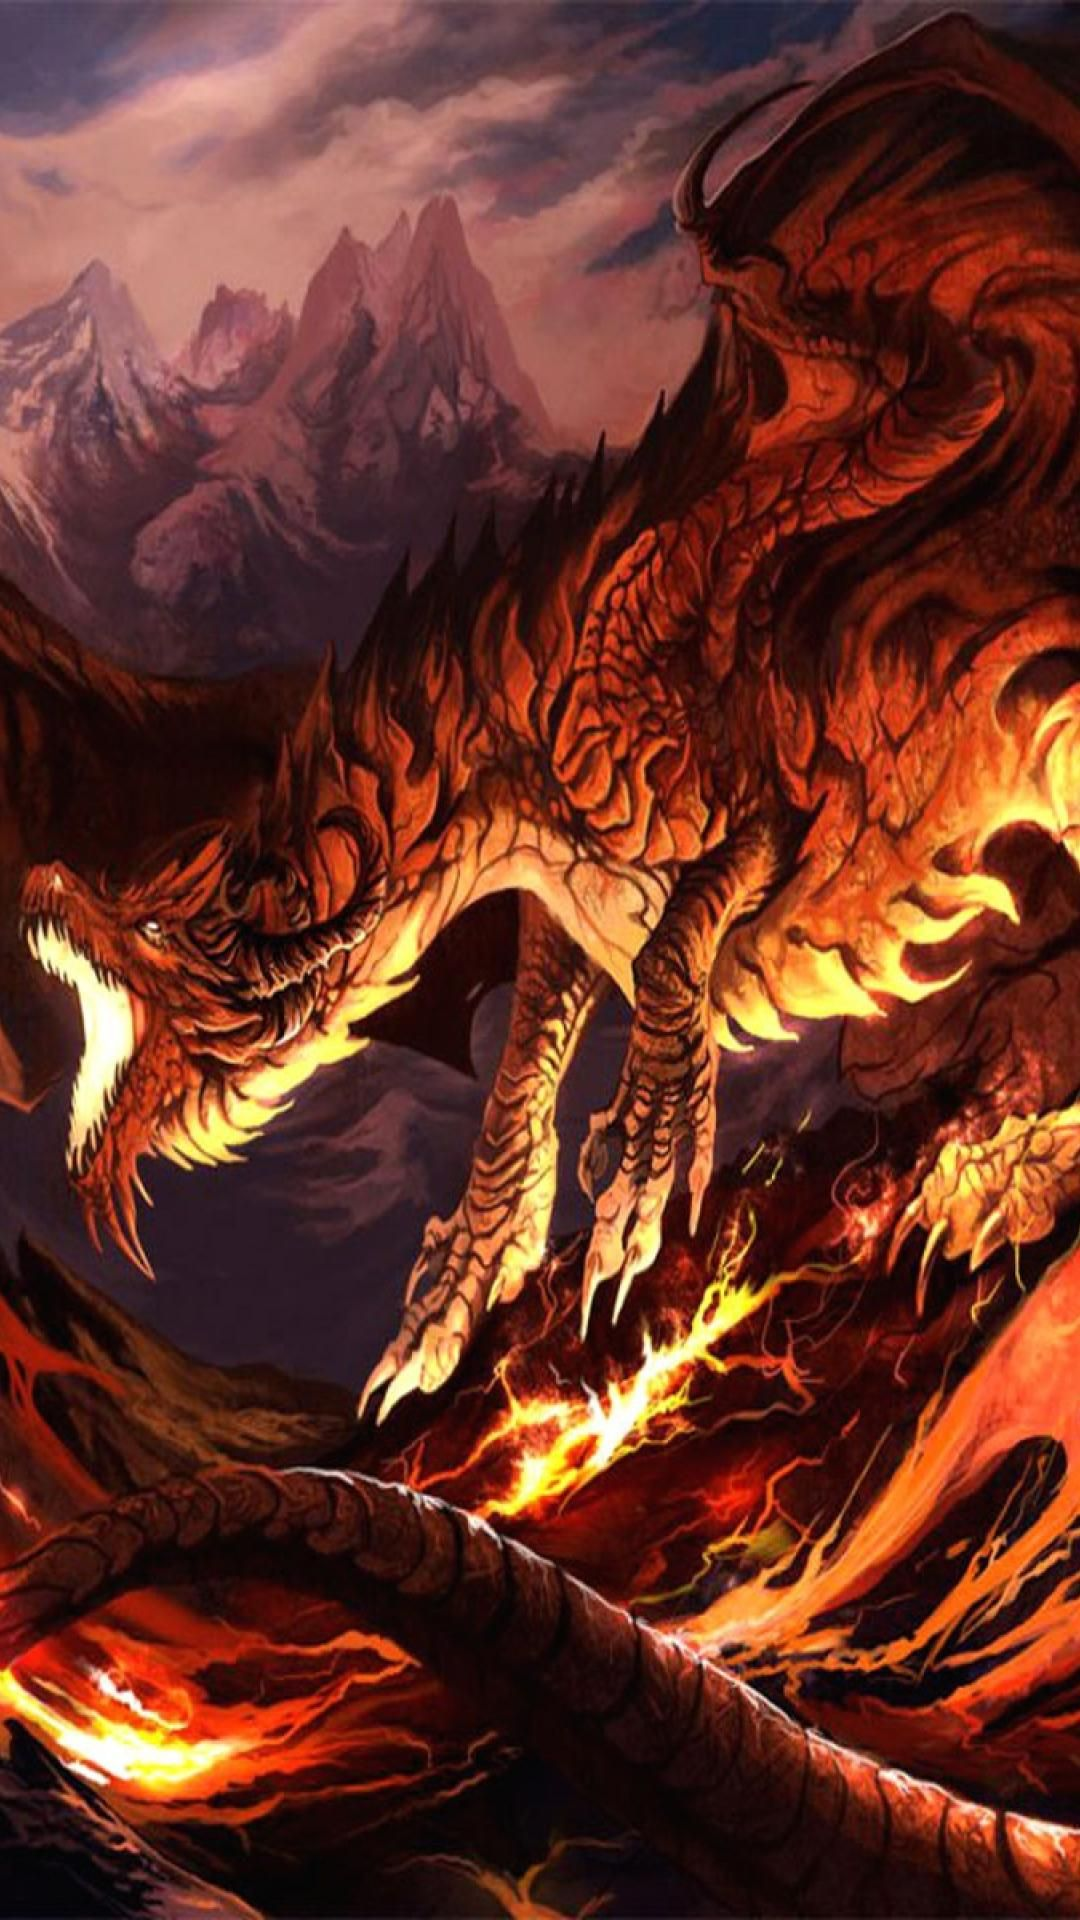 Dragon Wallpaper Iphone Flip Wallpapers Download Free